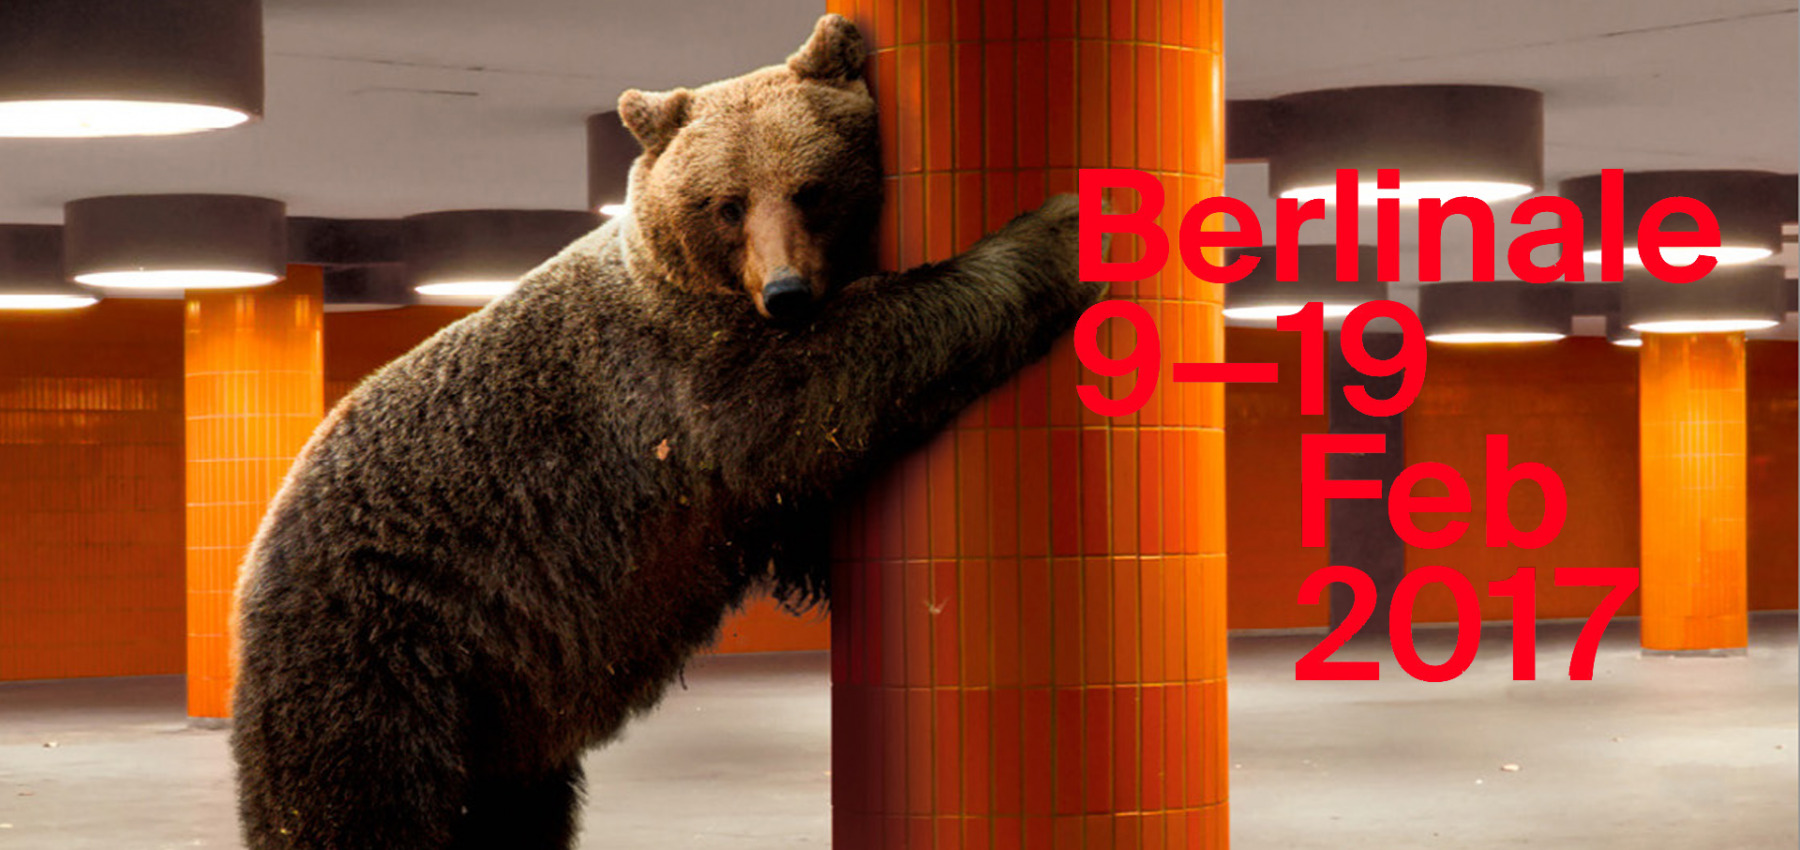 Welcome to the 67th Berlinale!